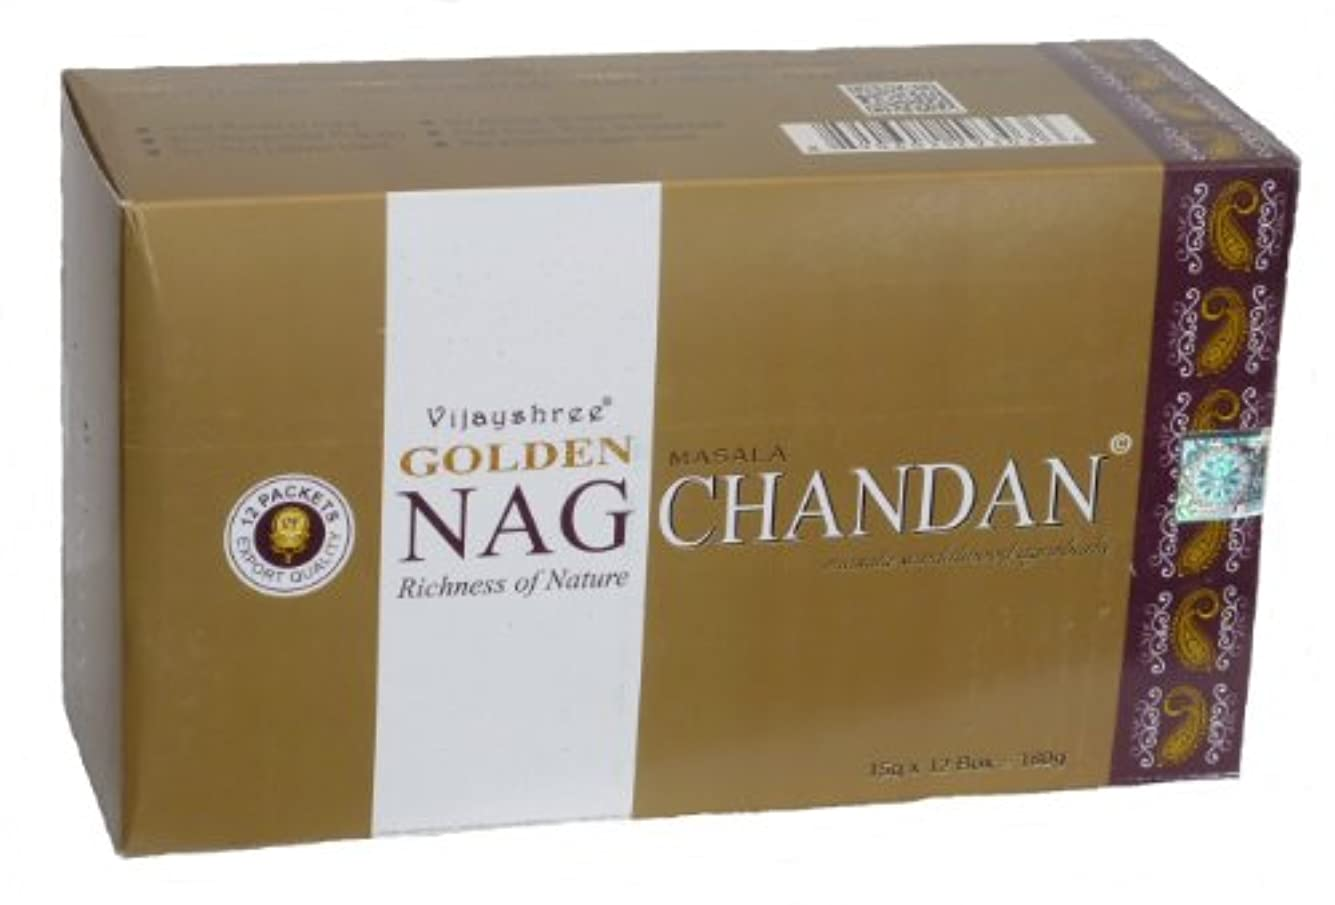 モス市民犯罪180 gms Box of GOLDEN NAG CHANDAN Masala Agarbathi Incense Sticks - in stock and shipped by Busy Bits by Golden...